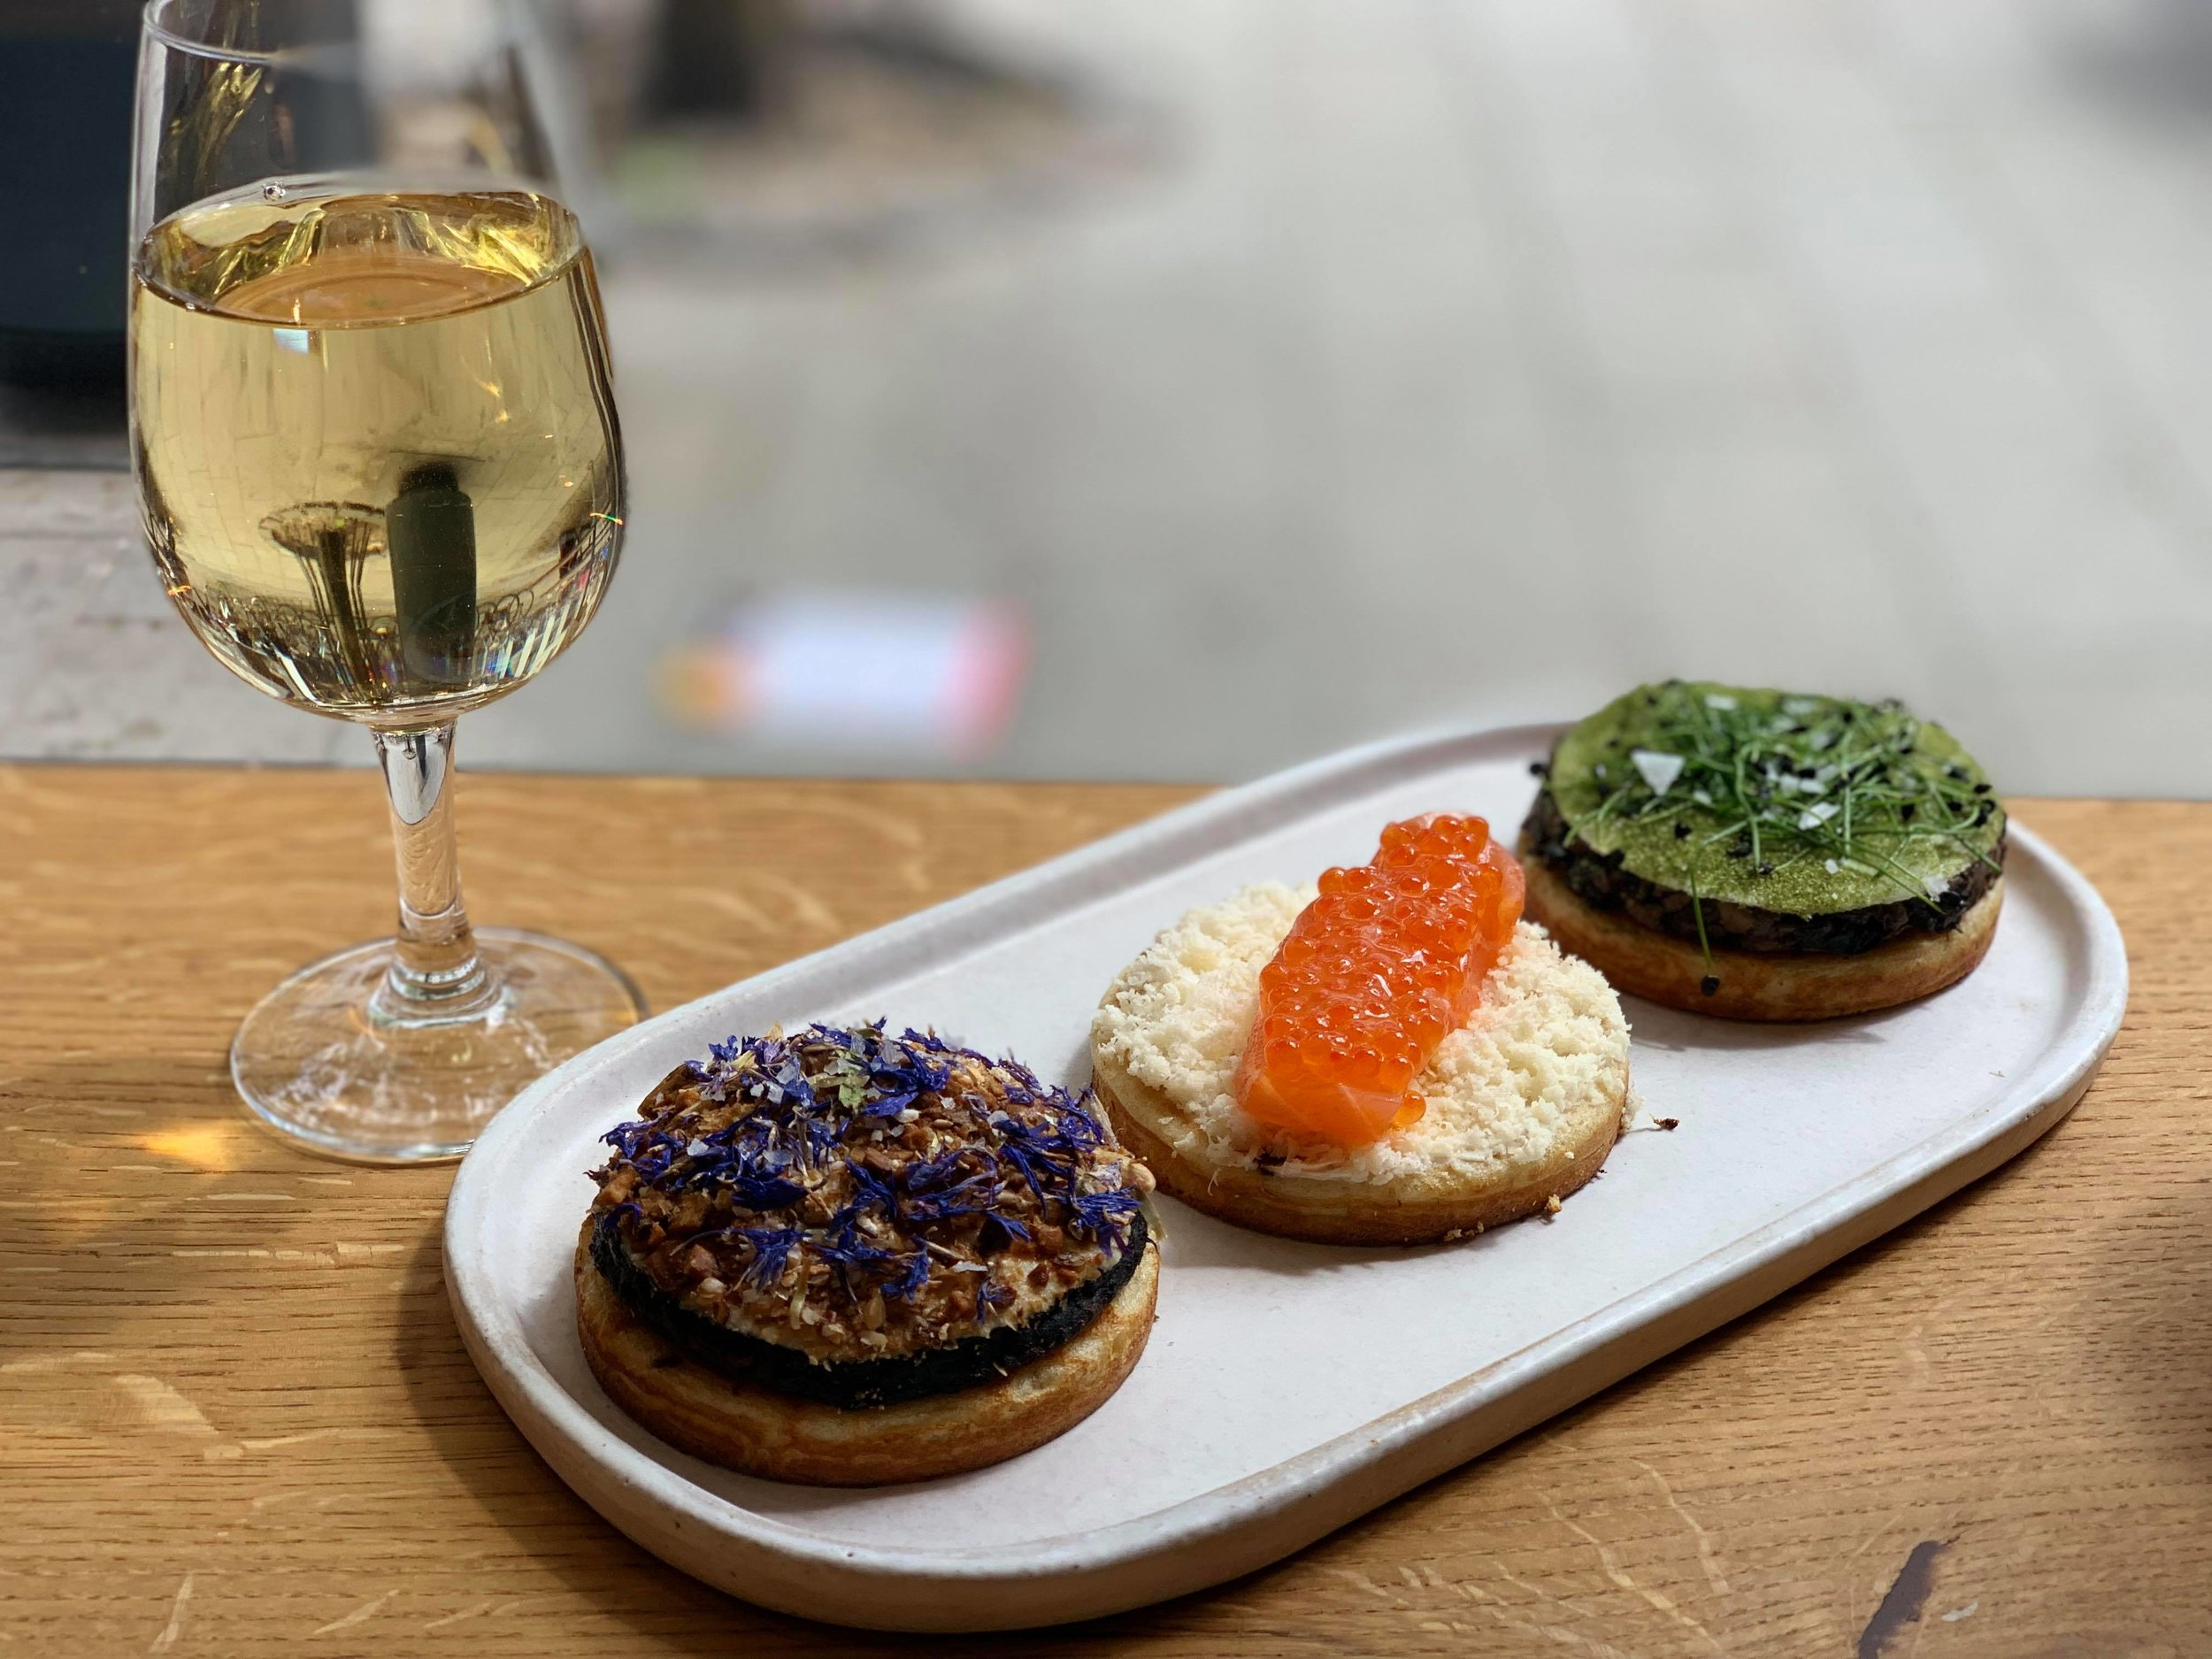 From left to right,  celeriac & cornflower  (with roasted buckwheat & sunflower seeds),  salmon & horseradish  (with trout roe and brown butter),  garlic fried mushroom & daikon ( with rock chives & kale powder)